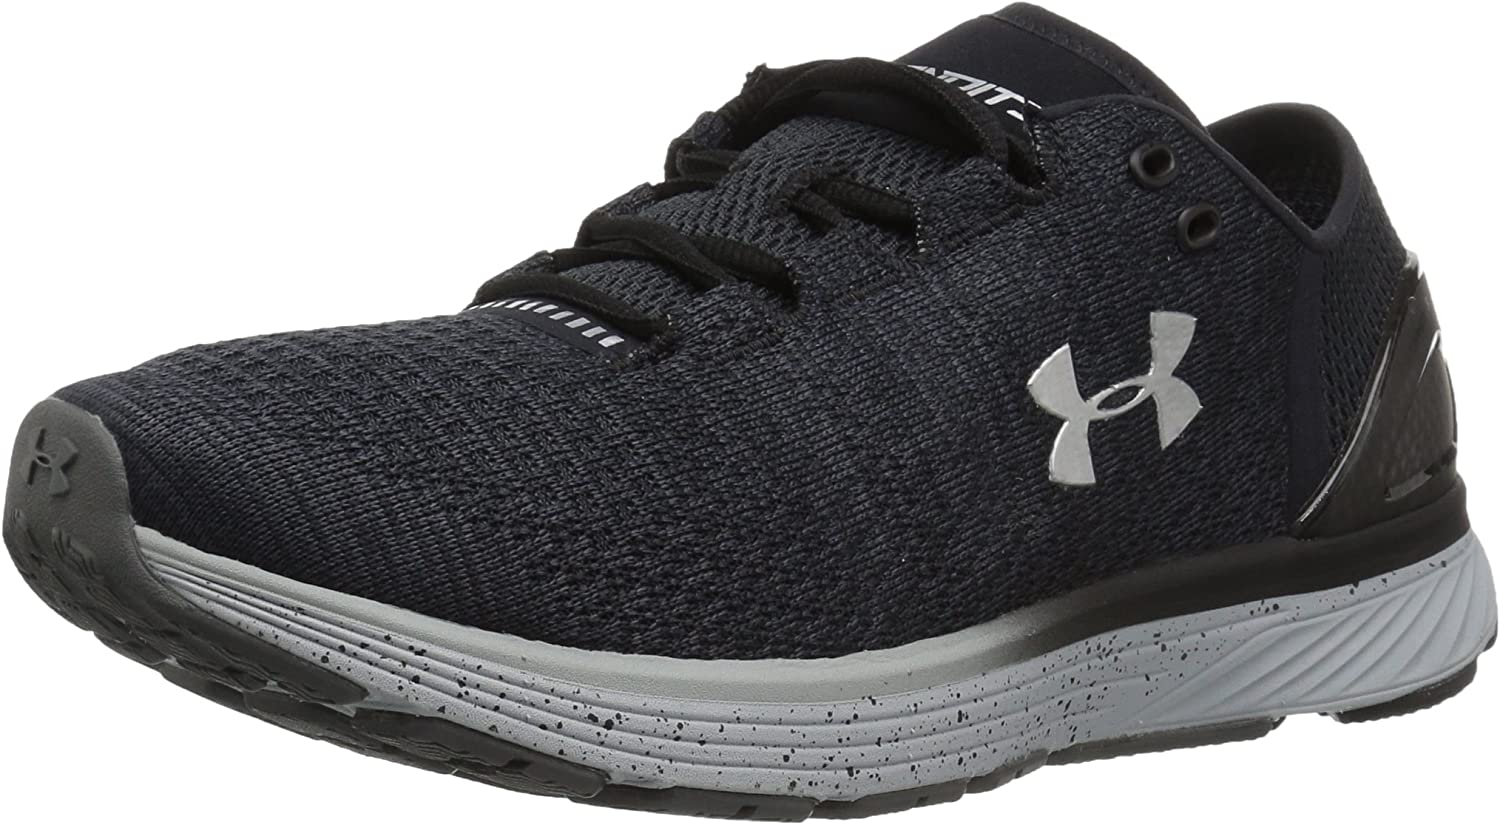 Under Armour Mens Charged Bandit 3 Ombre 4E Sneaker